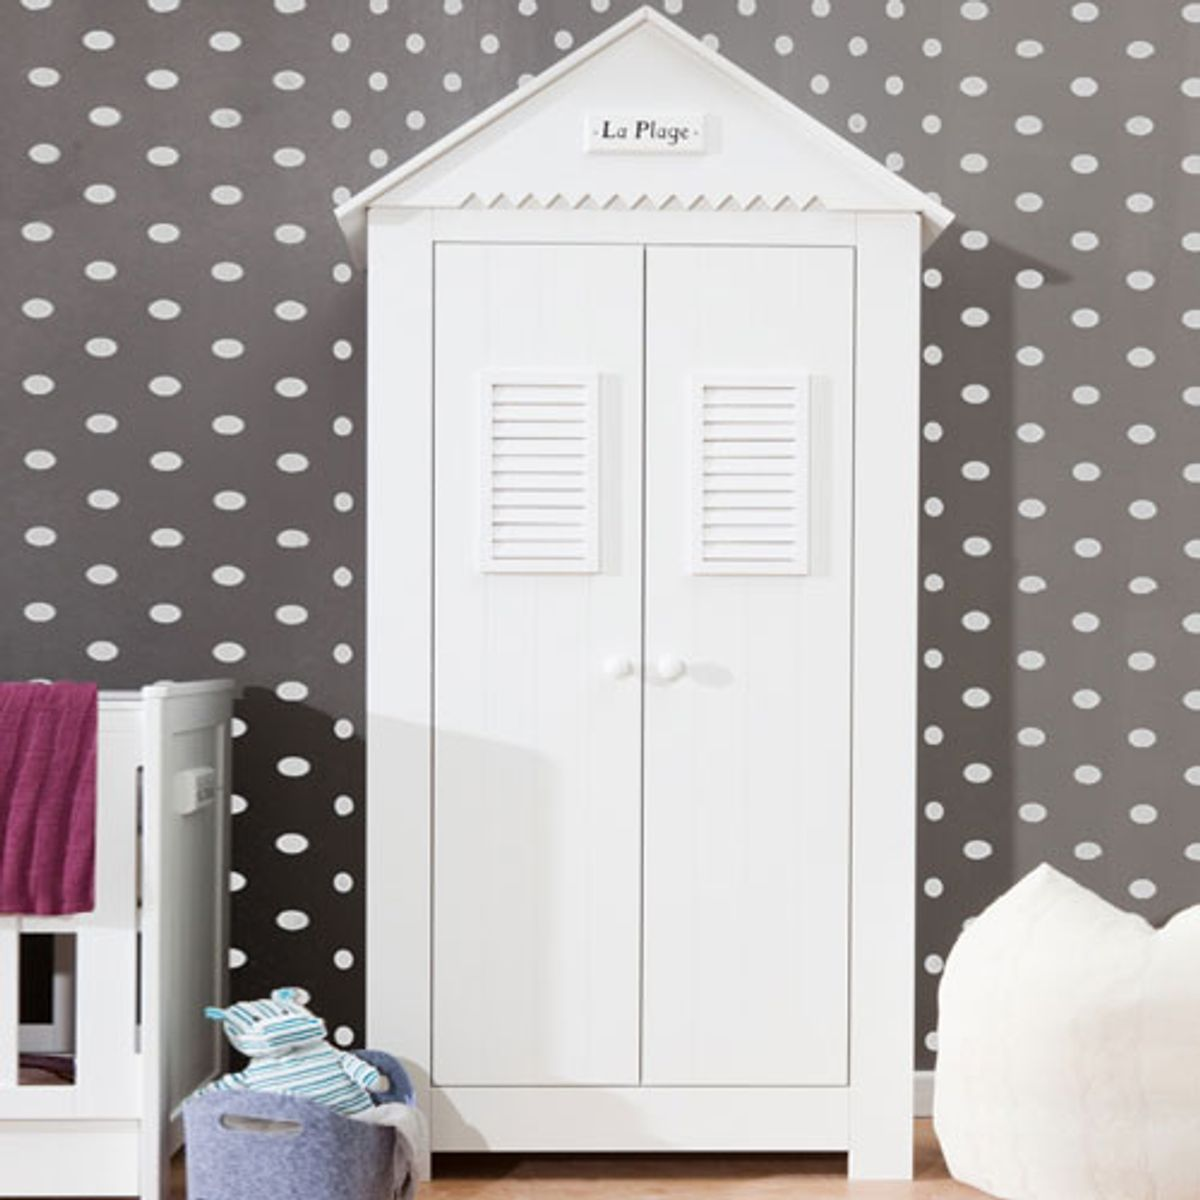 armoire penderie enfant cabine plage bois blanc 2p marsylia pinio decoclico. Black Bedroom Furniture Sets. Home Design Ideas